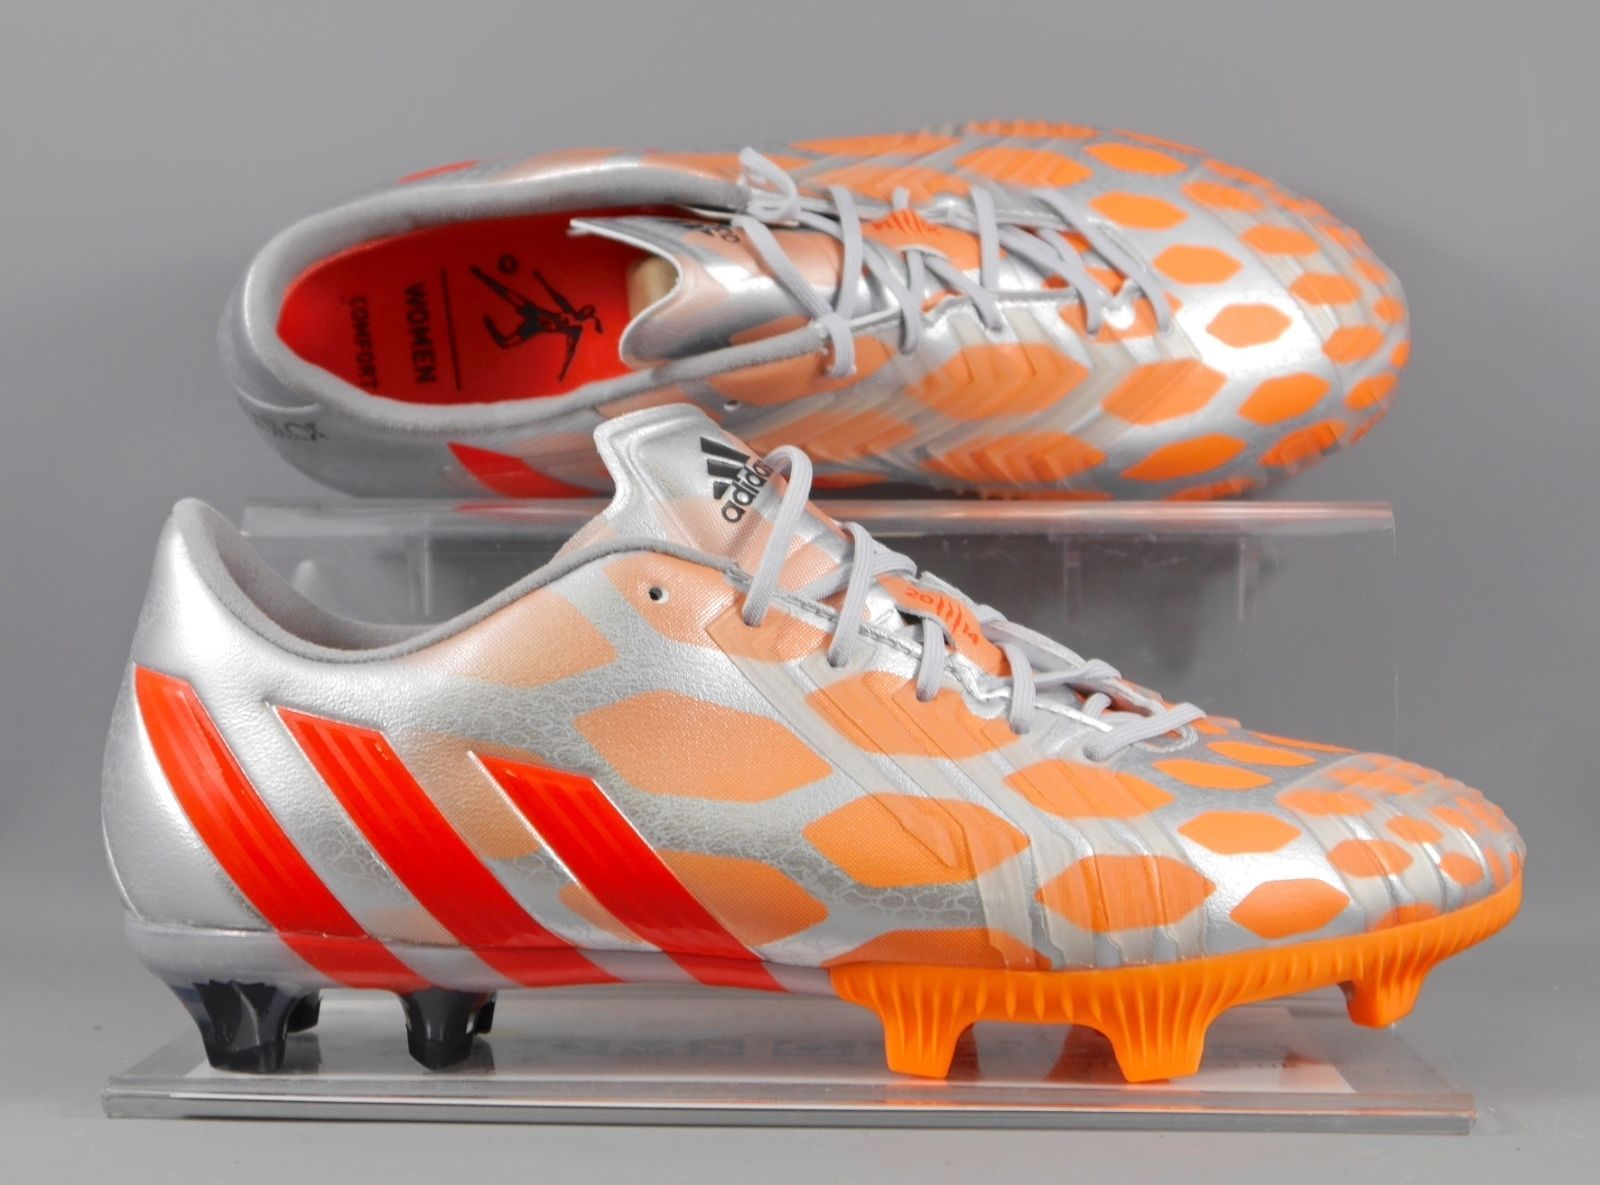 8c5873a15977 M18326 Adidas Predator instinct FG Womens firm ground football boots ...